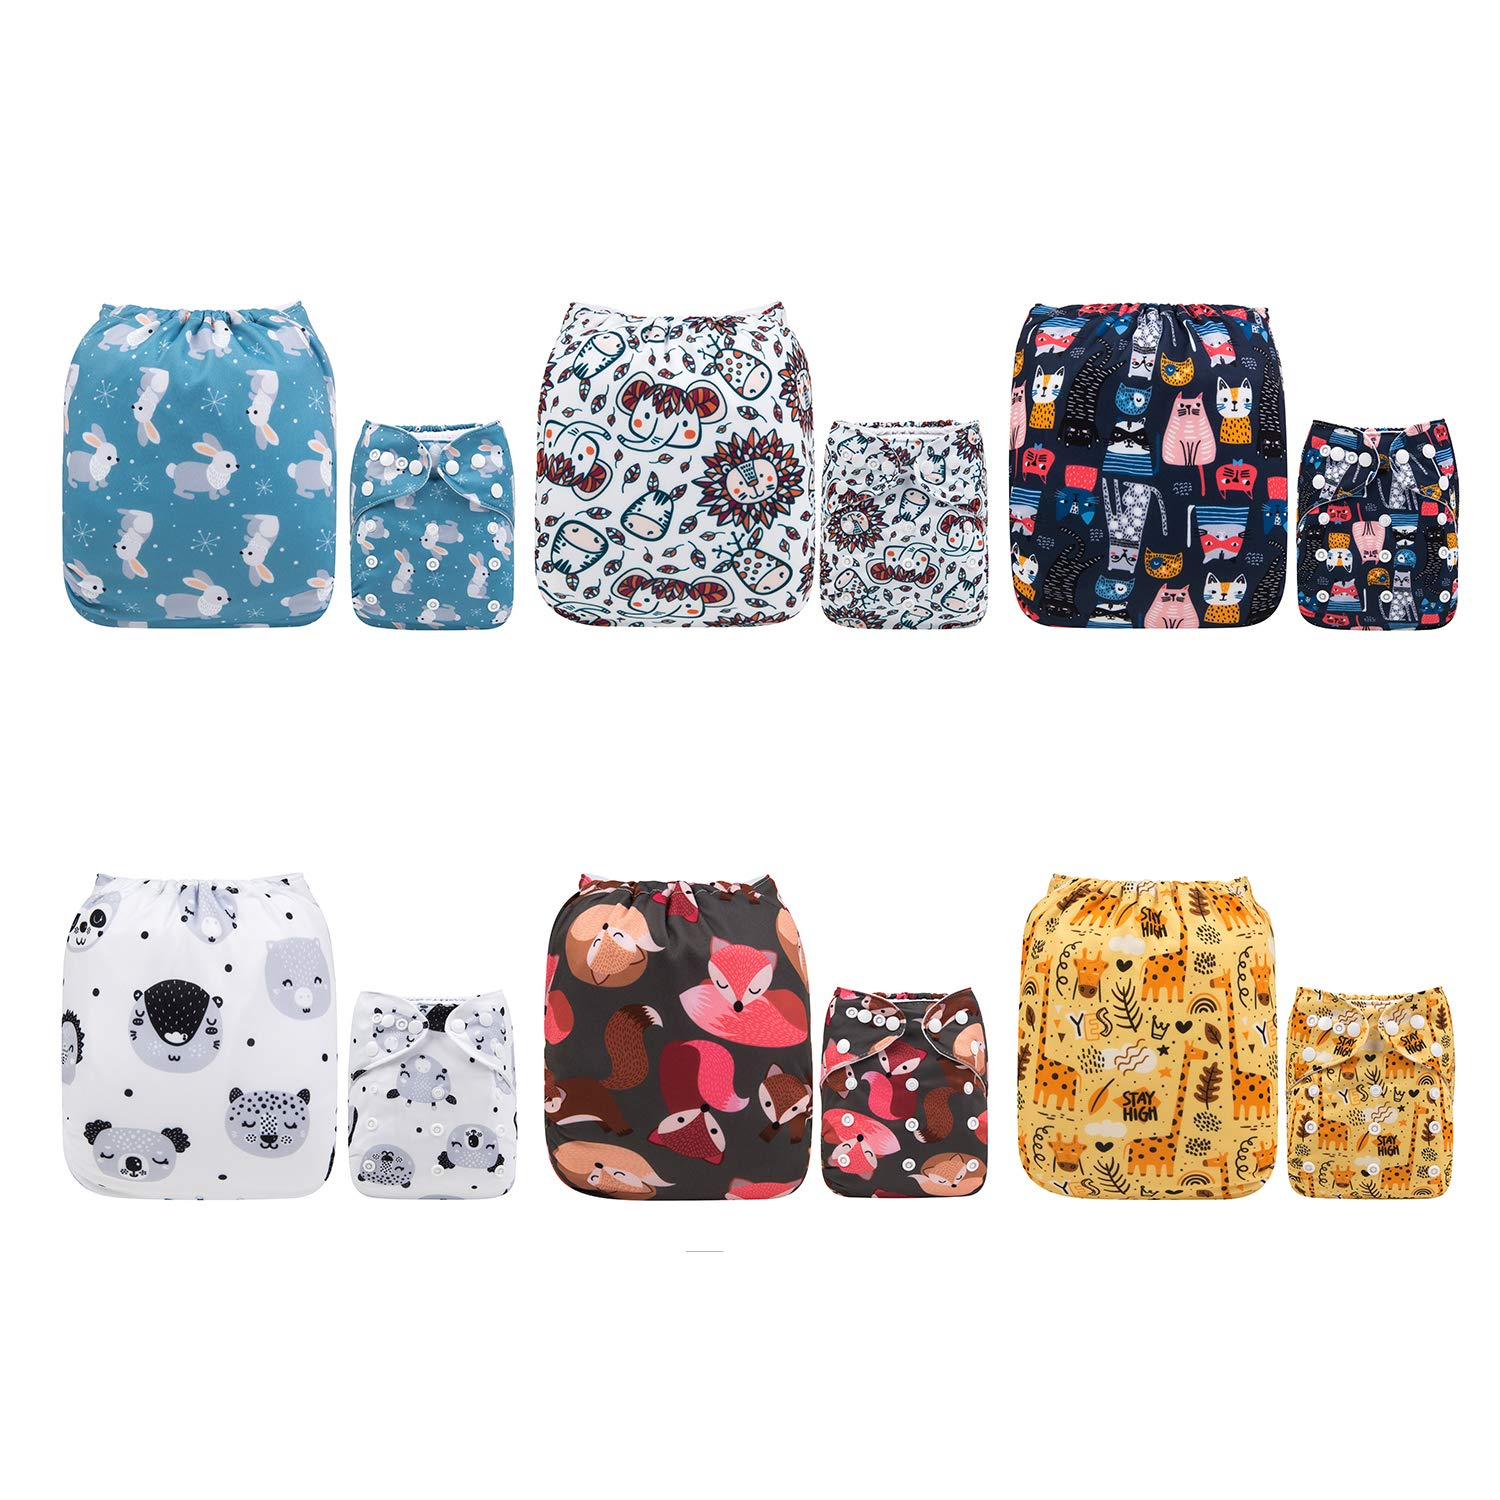 ALVABABY Baby Cloth Diapers One Size Adjustable Washable Reusable for Baby Girls and Boys 6 Pack with 12 Inserts 6DM19